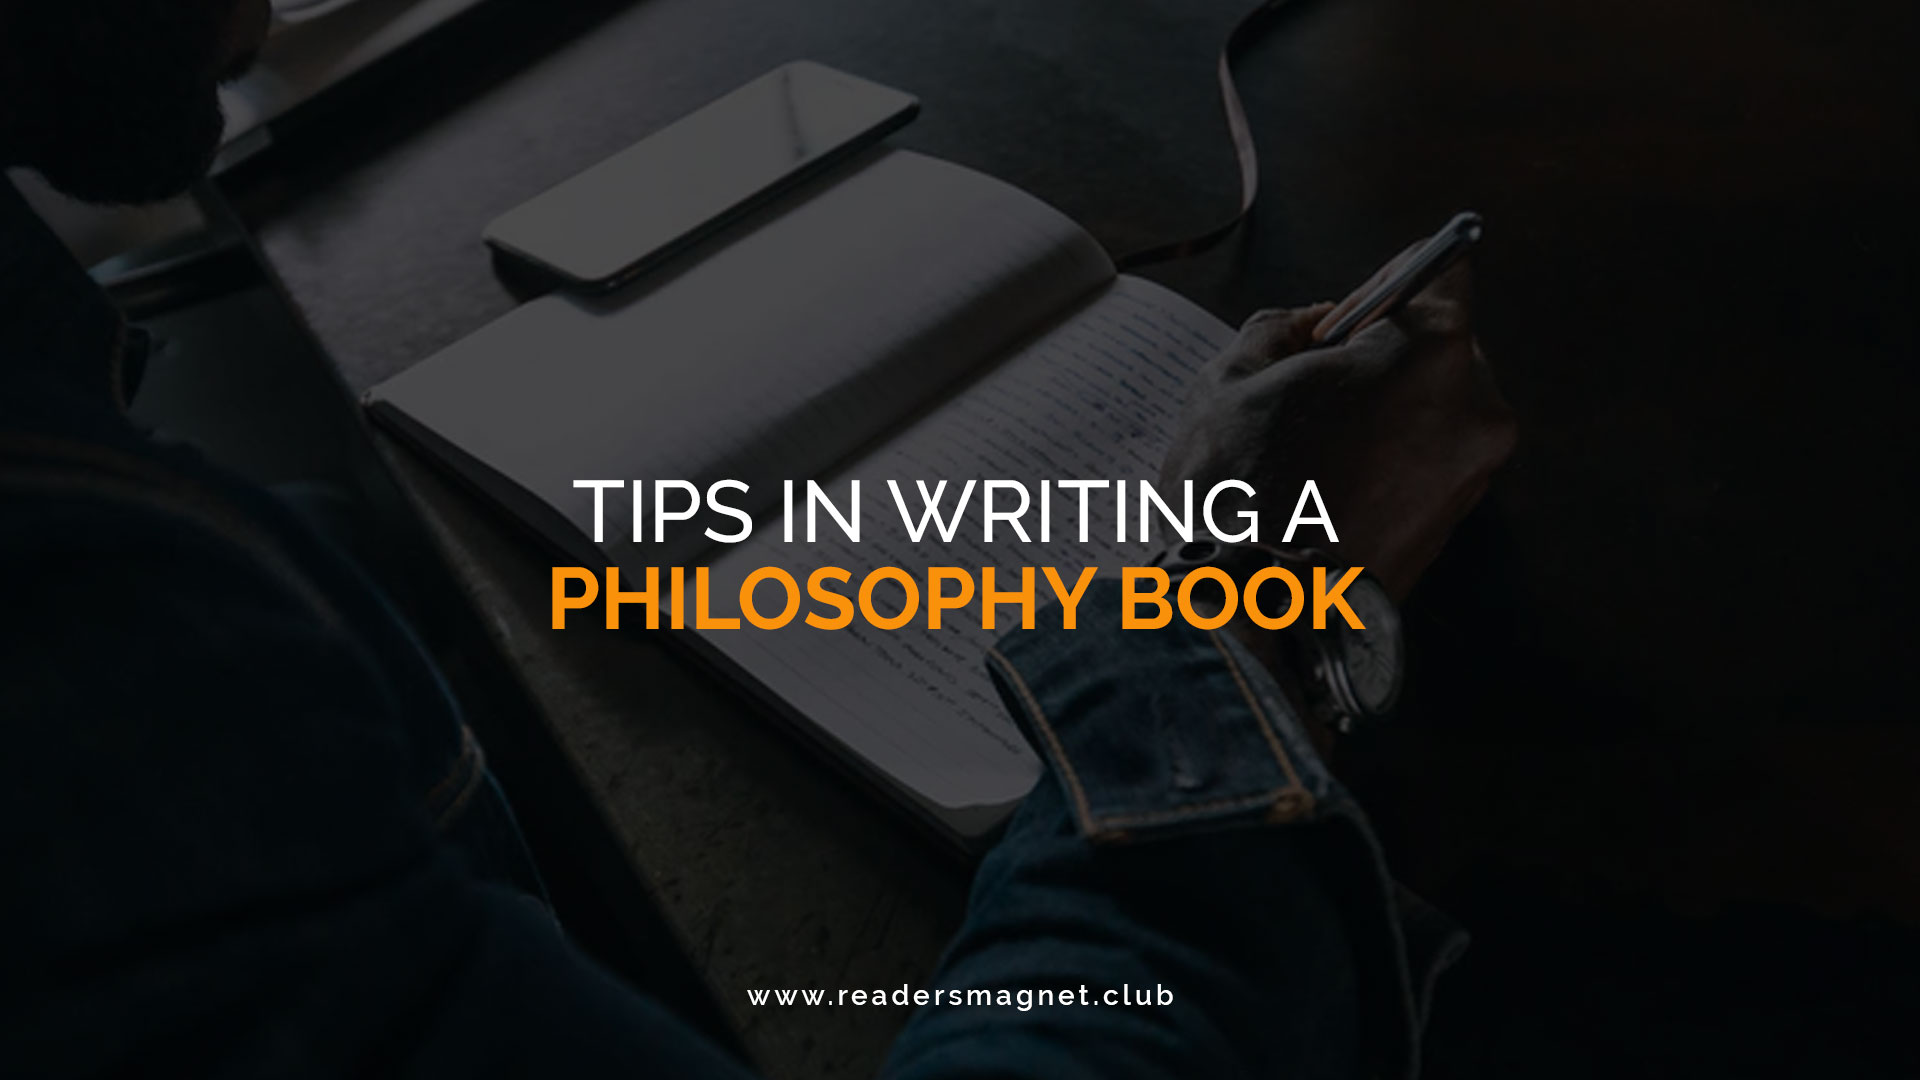 Tips-in-Writing-a-Philosophy-Book banner